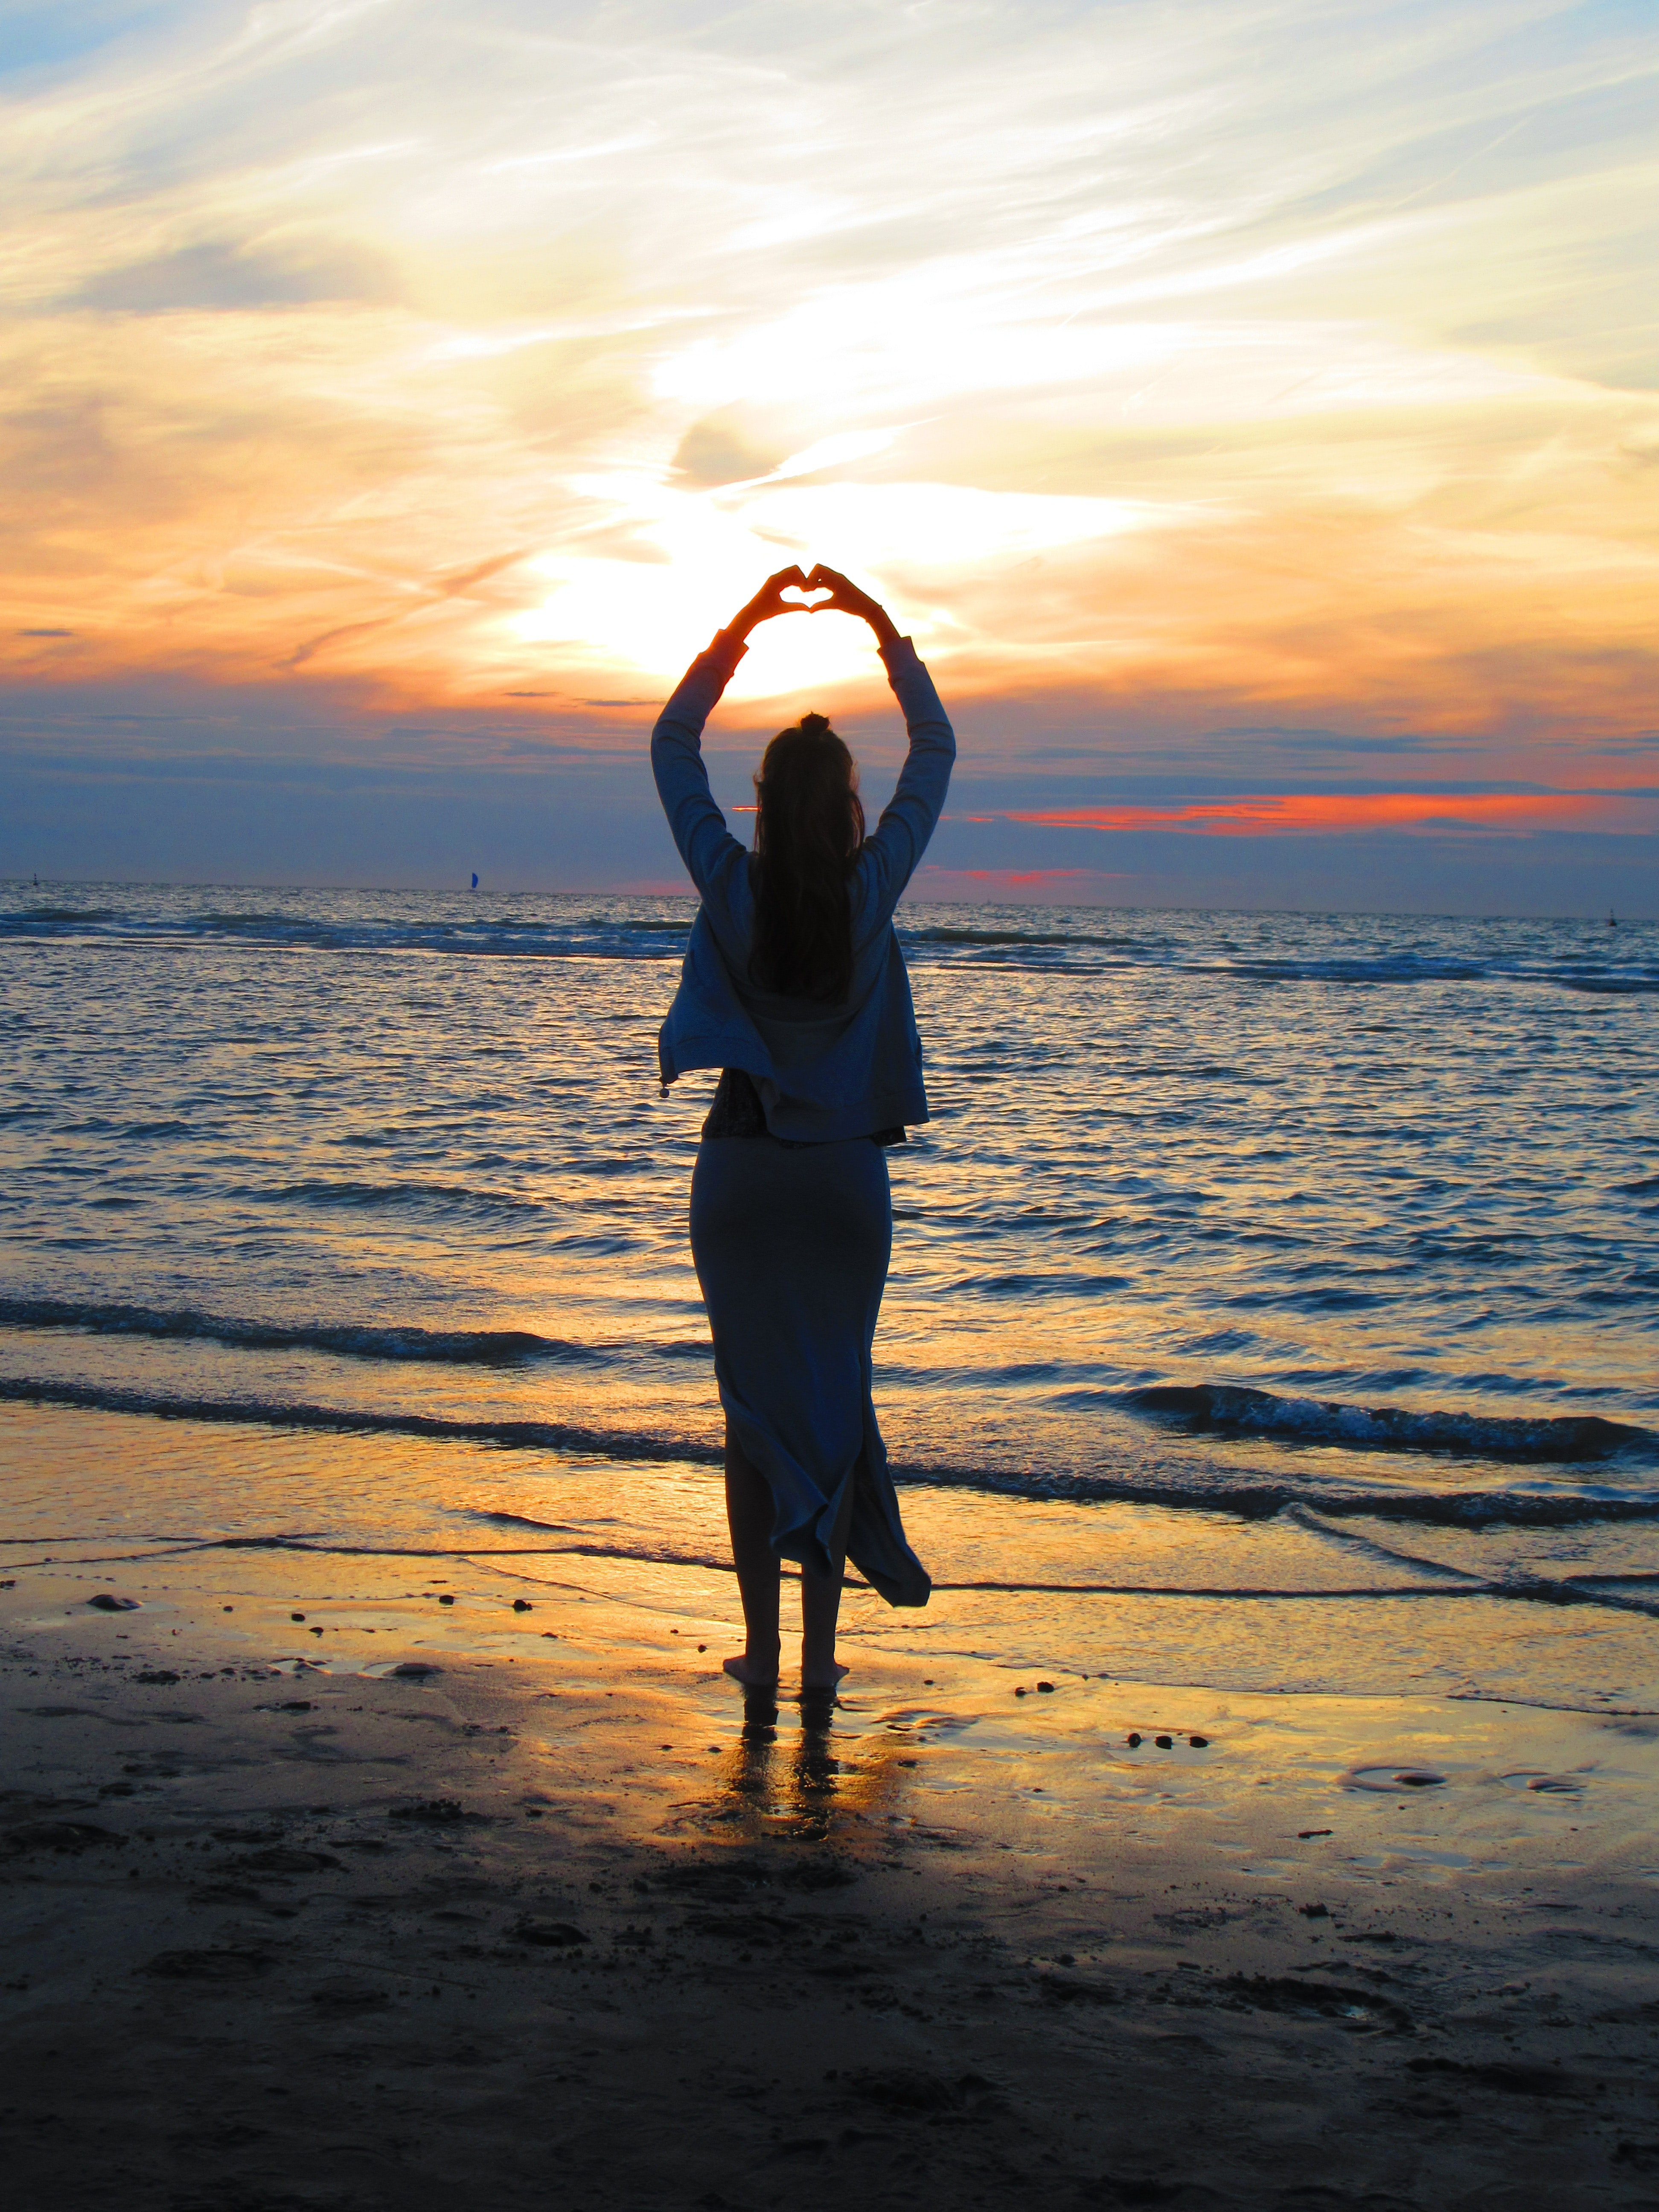 2f8c4f0dad Woman With Arms Up Making Heart Sign While Standing on Beach at ...